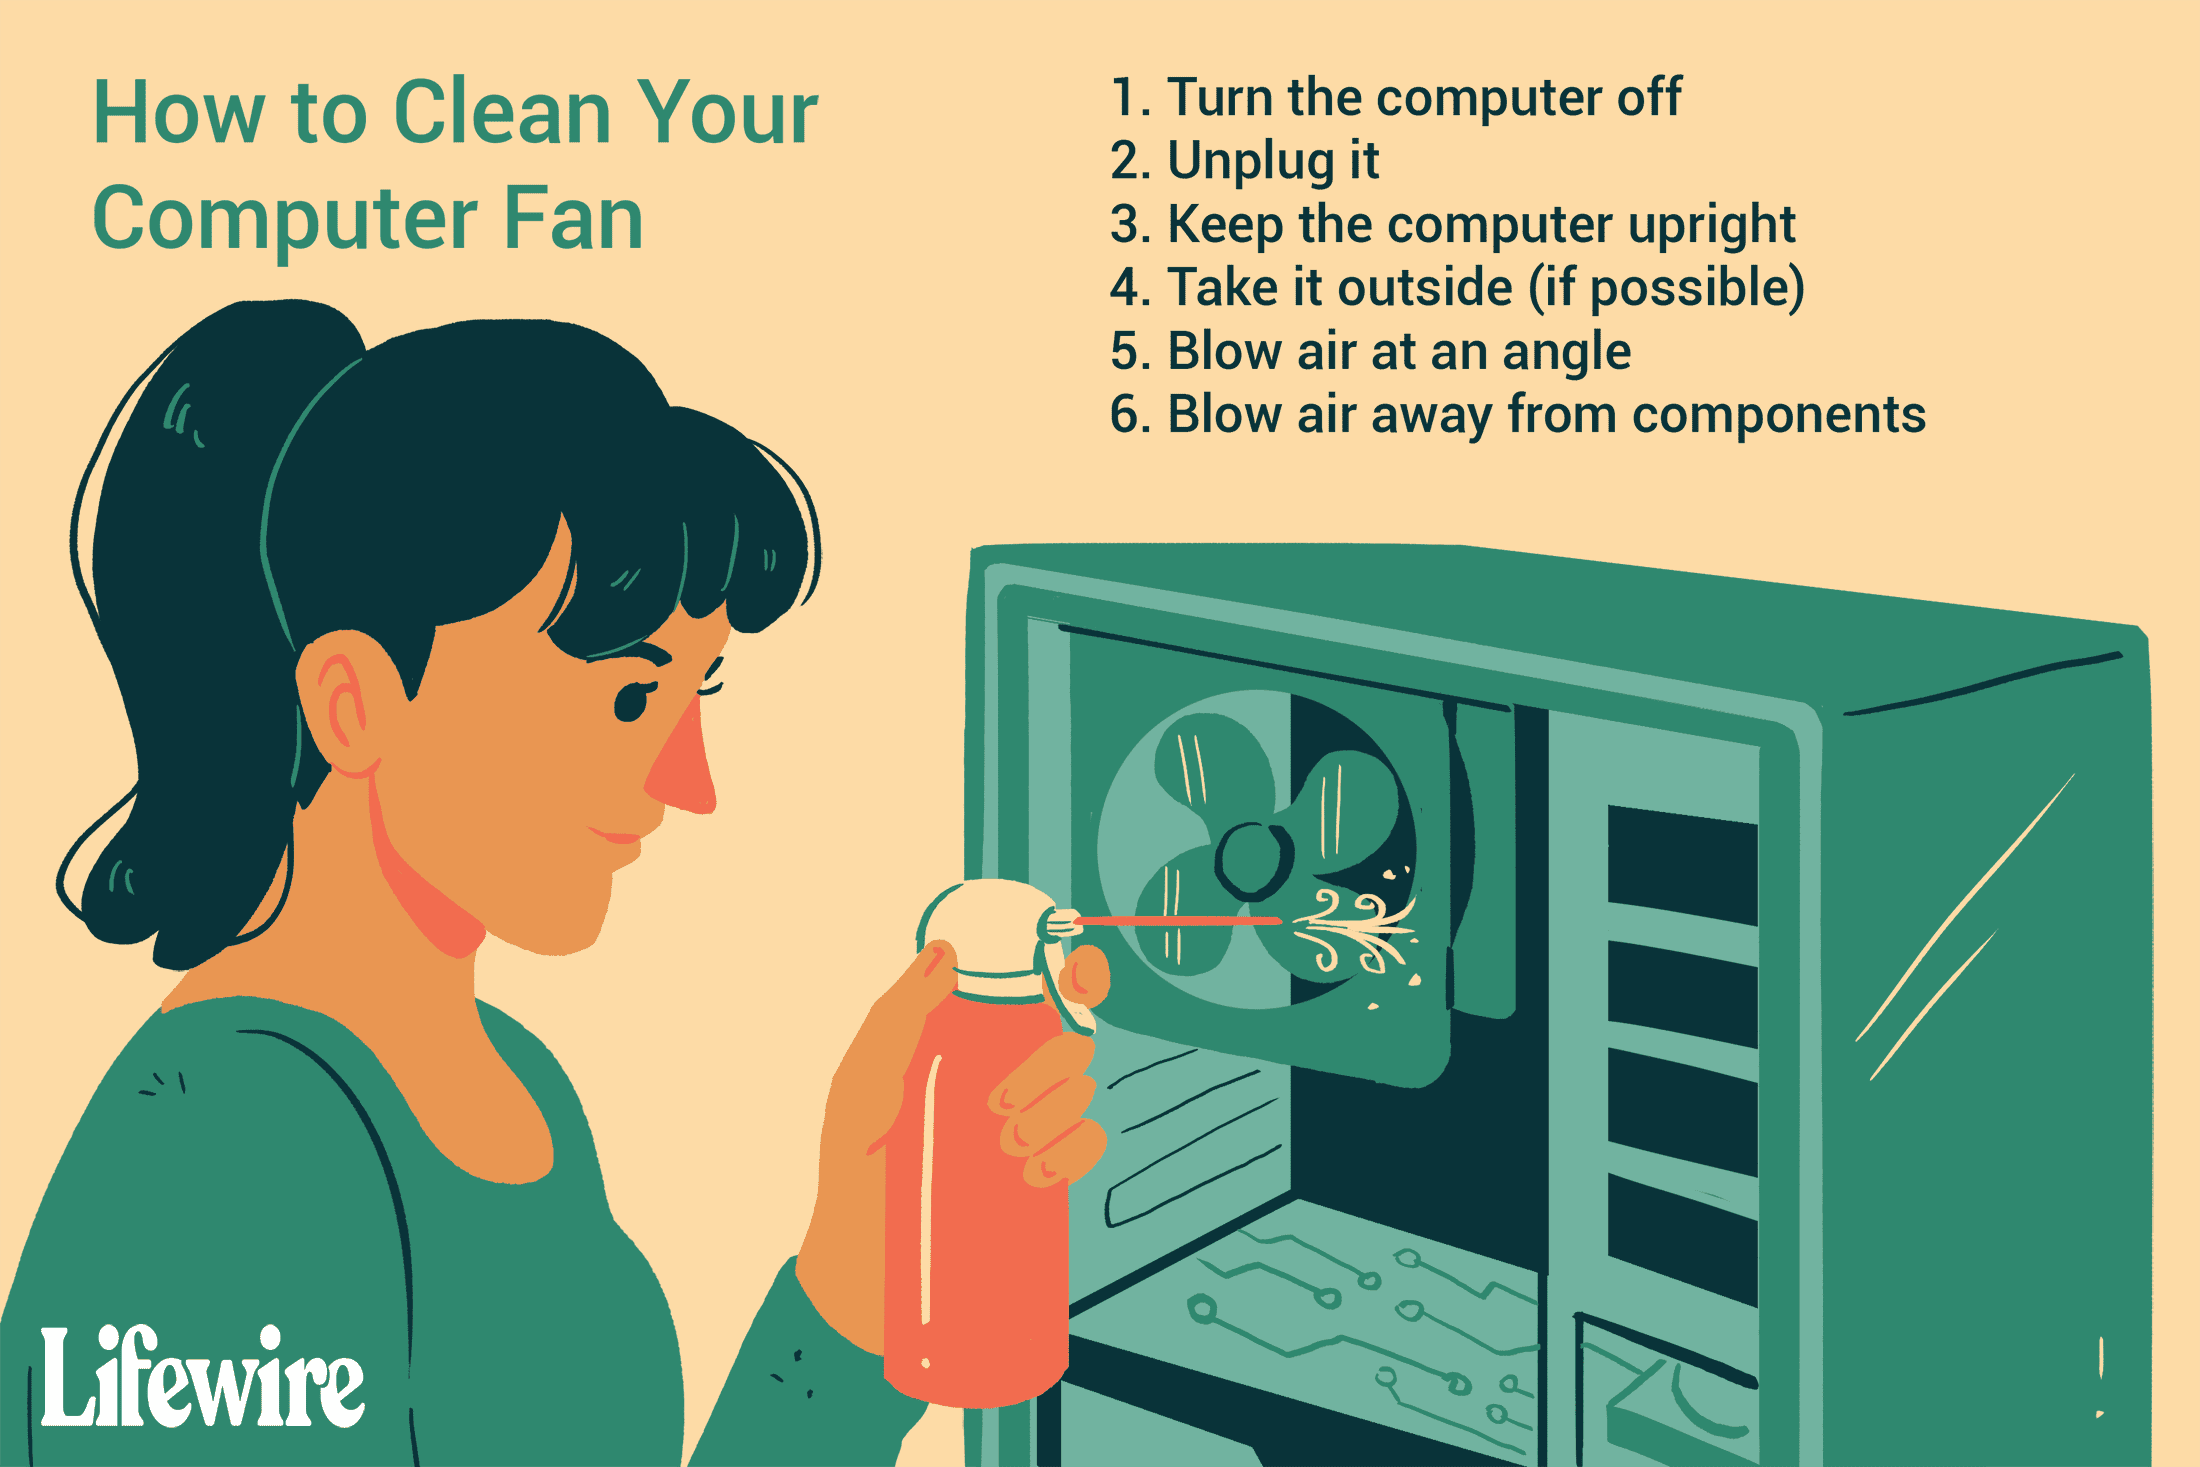 An illustration of a woman cleaning a computer fan with canned air.